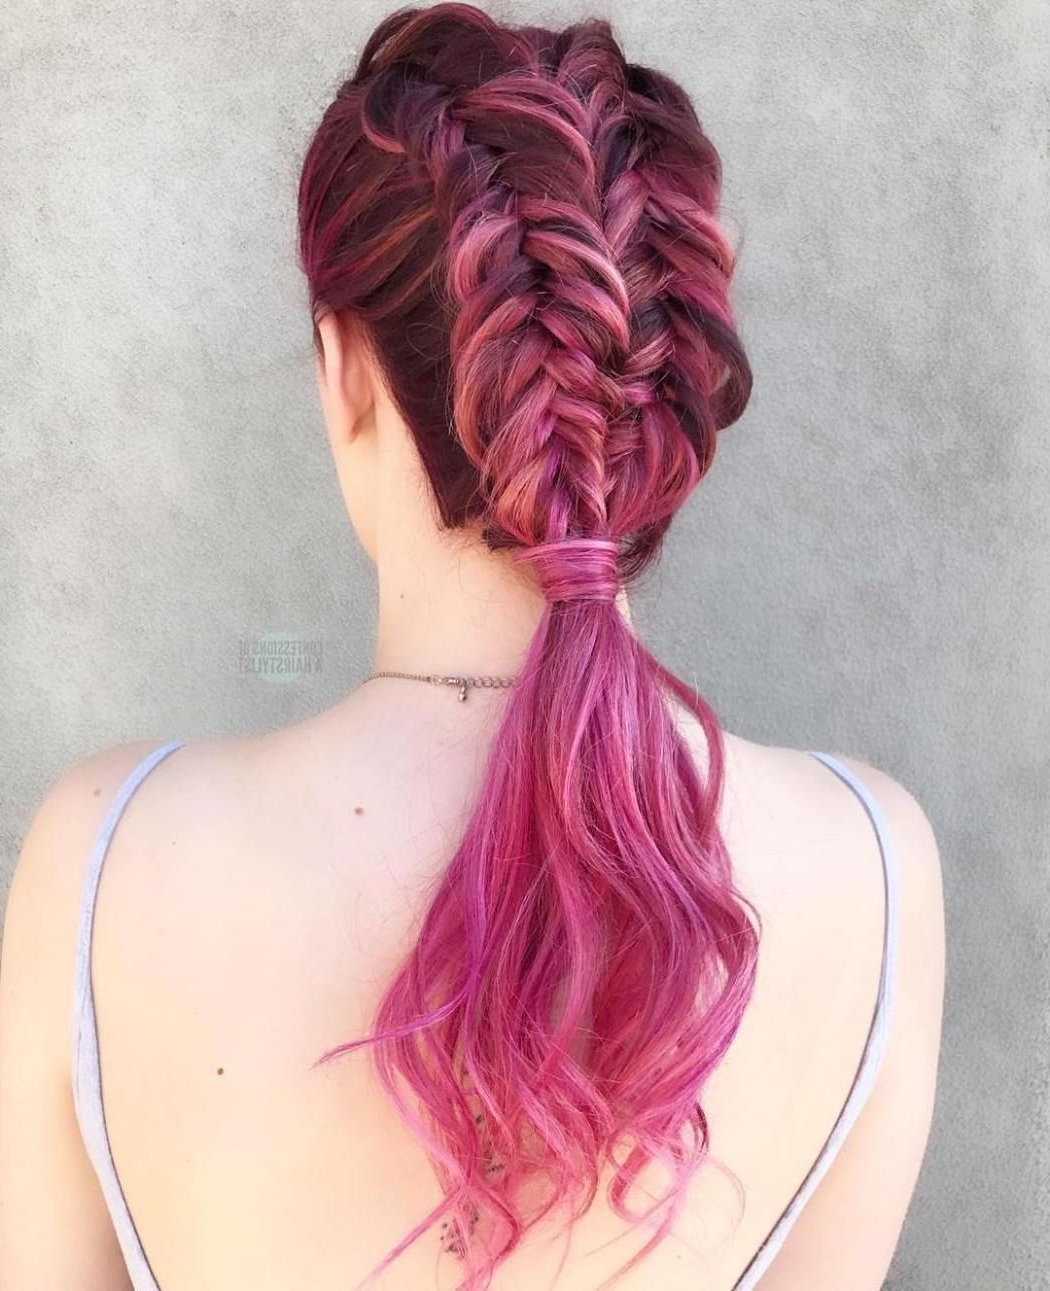 Braided Ponytail Ideas: 40 Cute Ponytails With Braids (View 6 of 20)